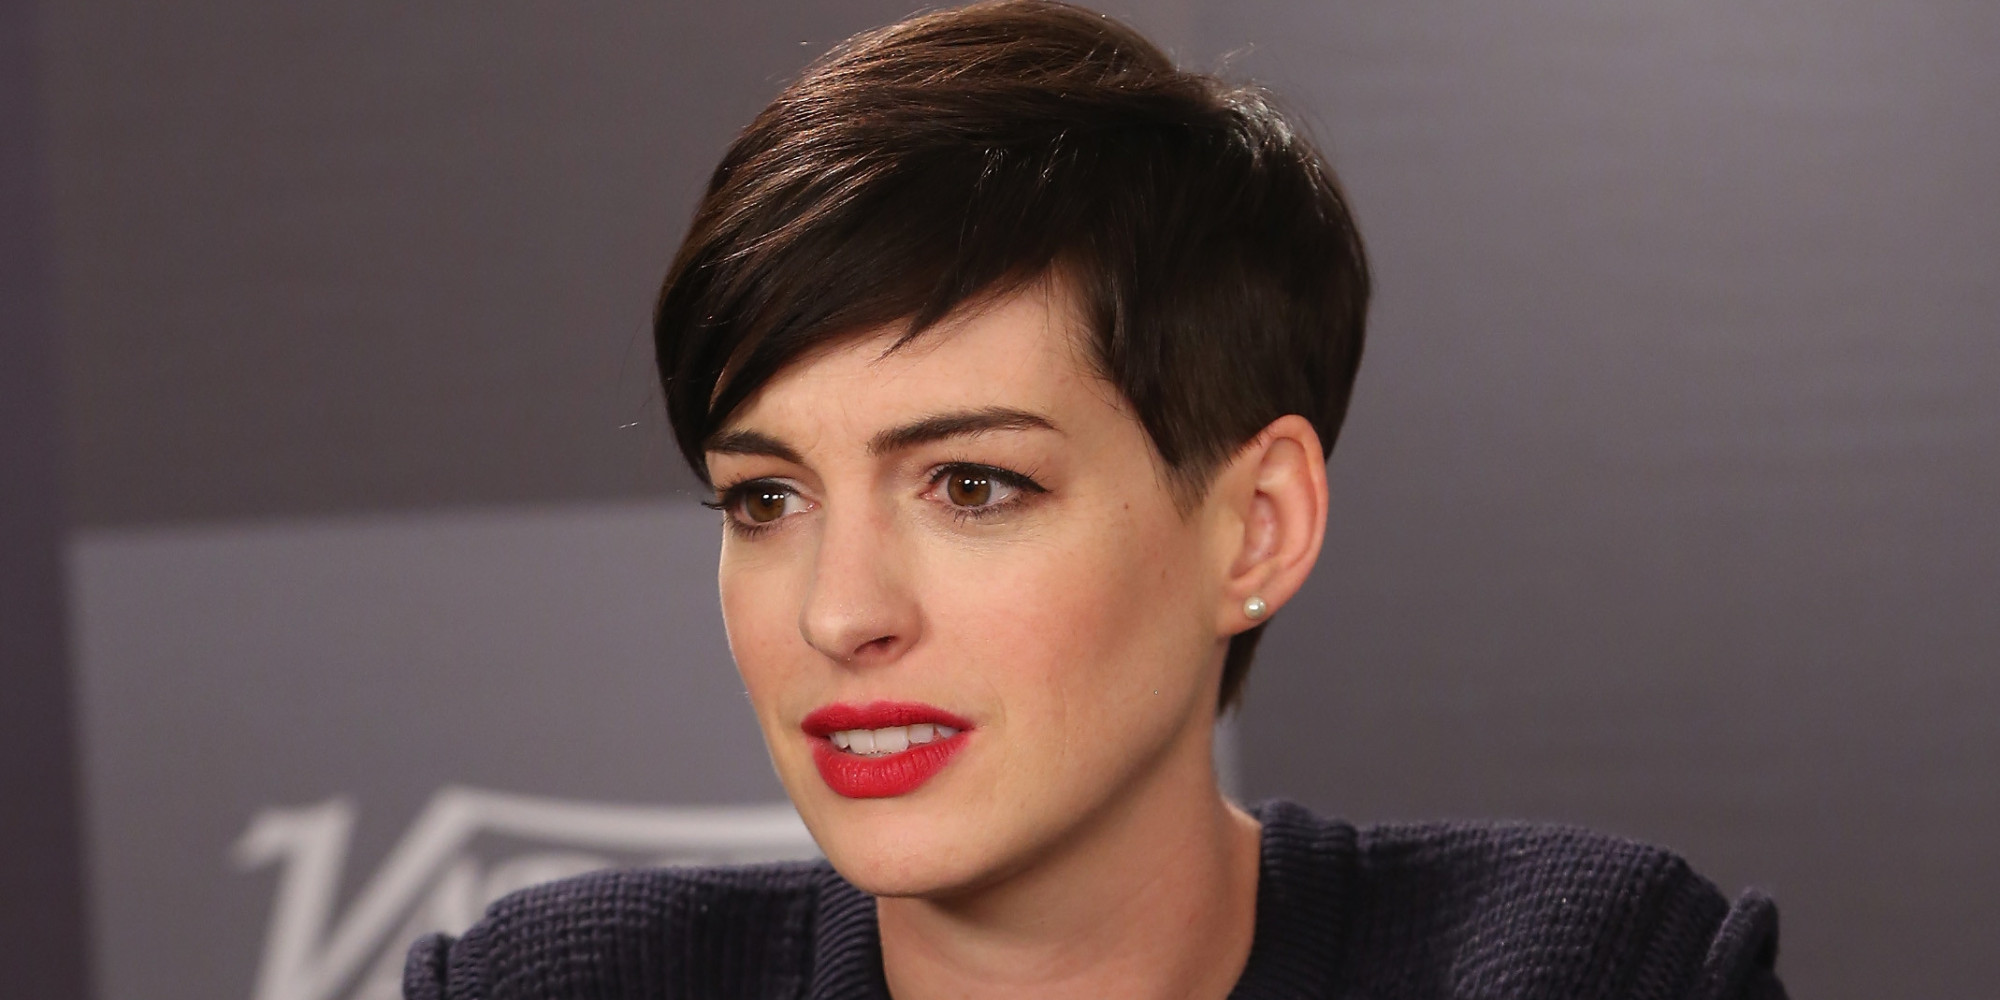 Anne Hathaway Is Very Aware Of Her 'Hathahaters' | HuffPost Anne Hathaway Facebook